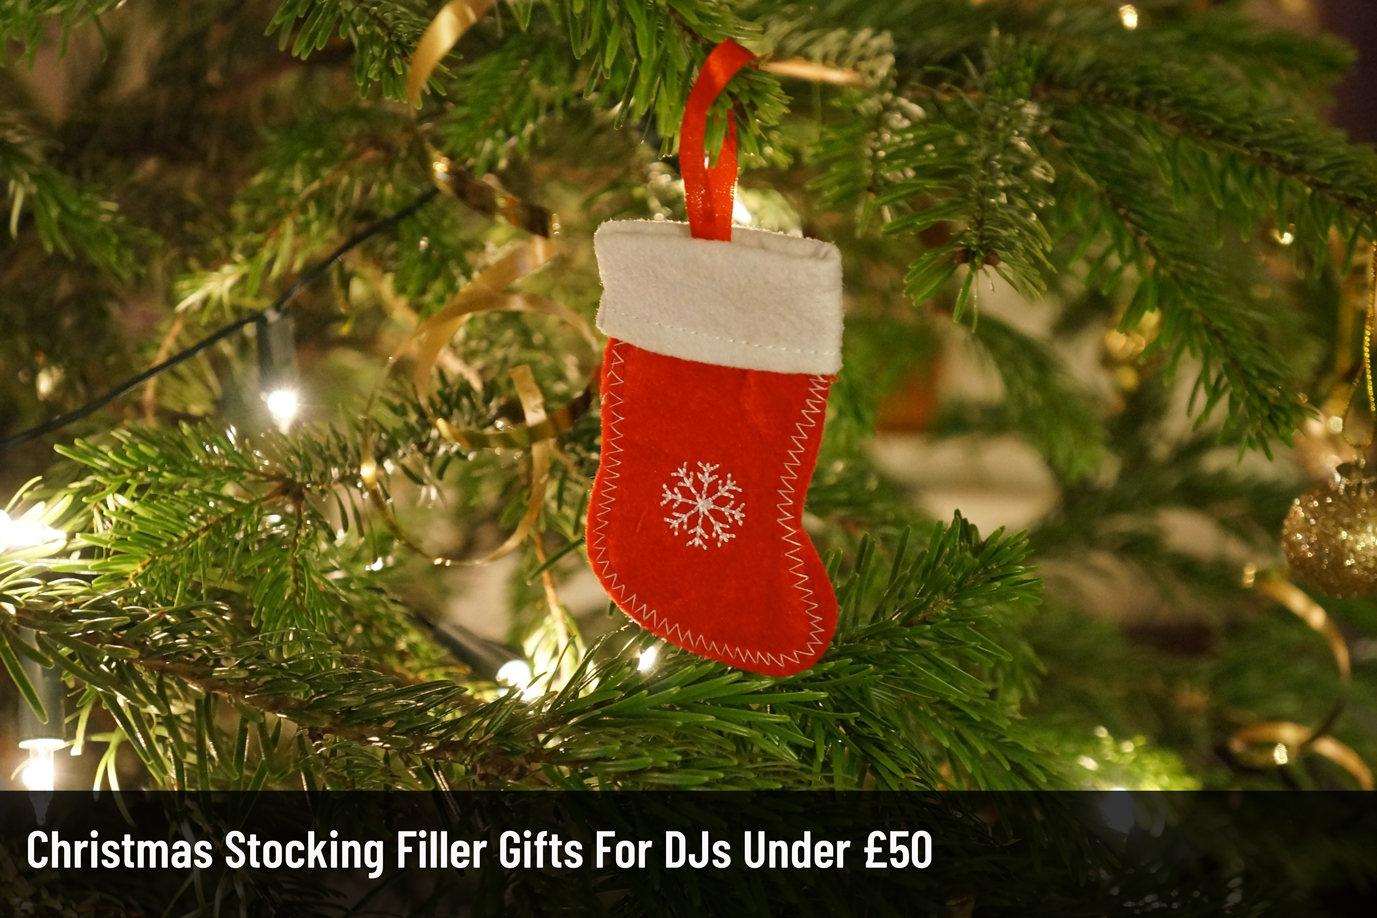 Christmas Stocking Filler Gifts for DJ's Under £50